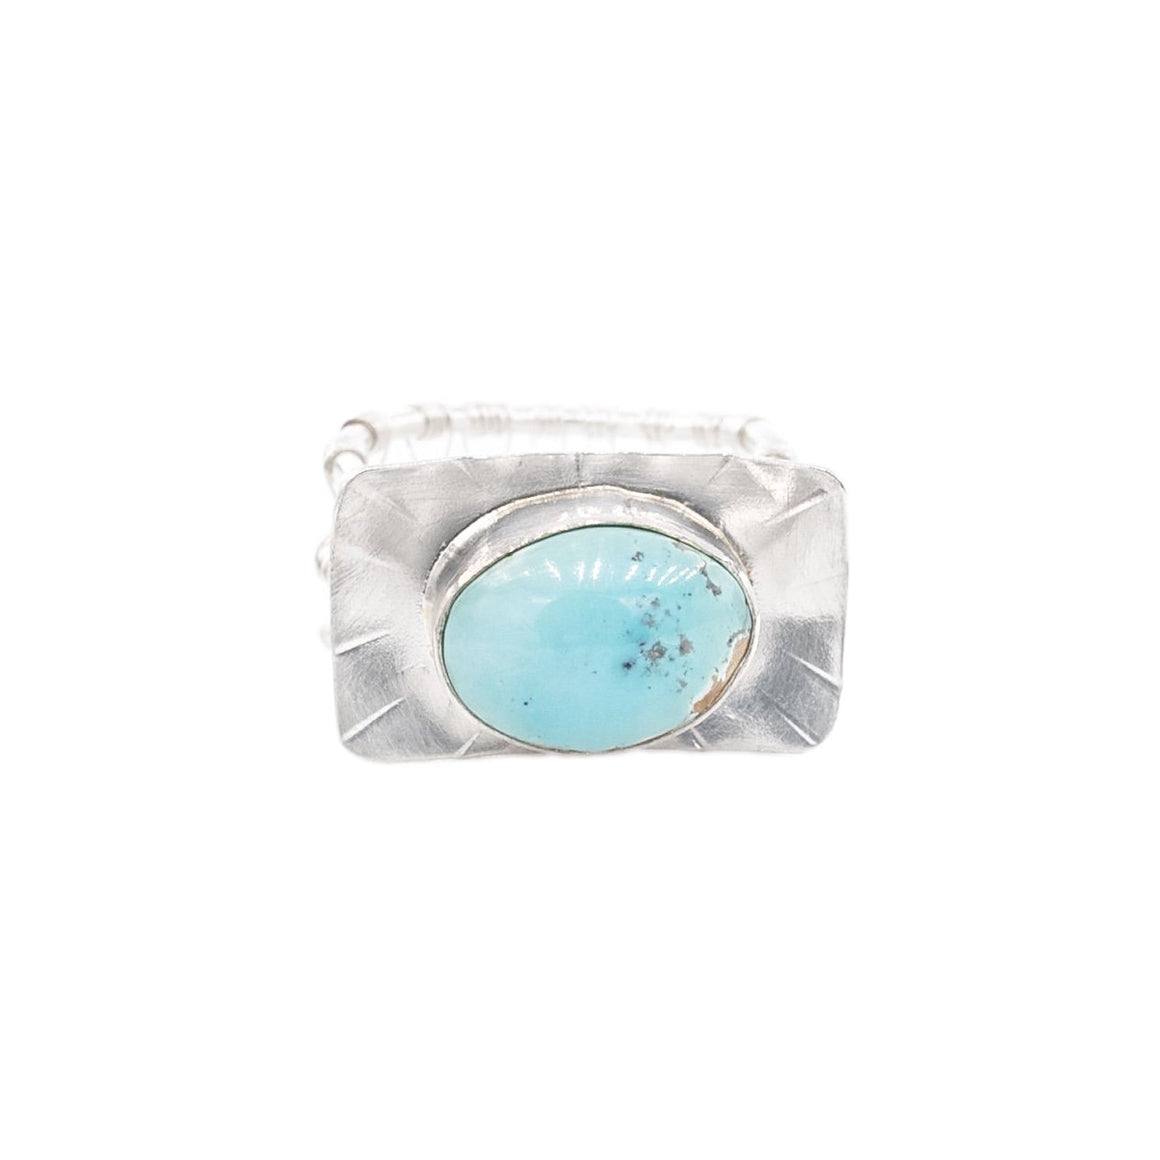 Classic Turquoise and Silver Ring, Woven Nest Band by Original Sin Jewelry